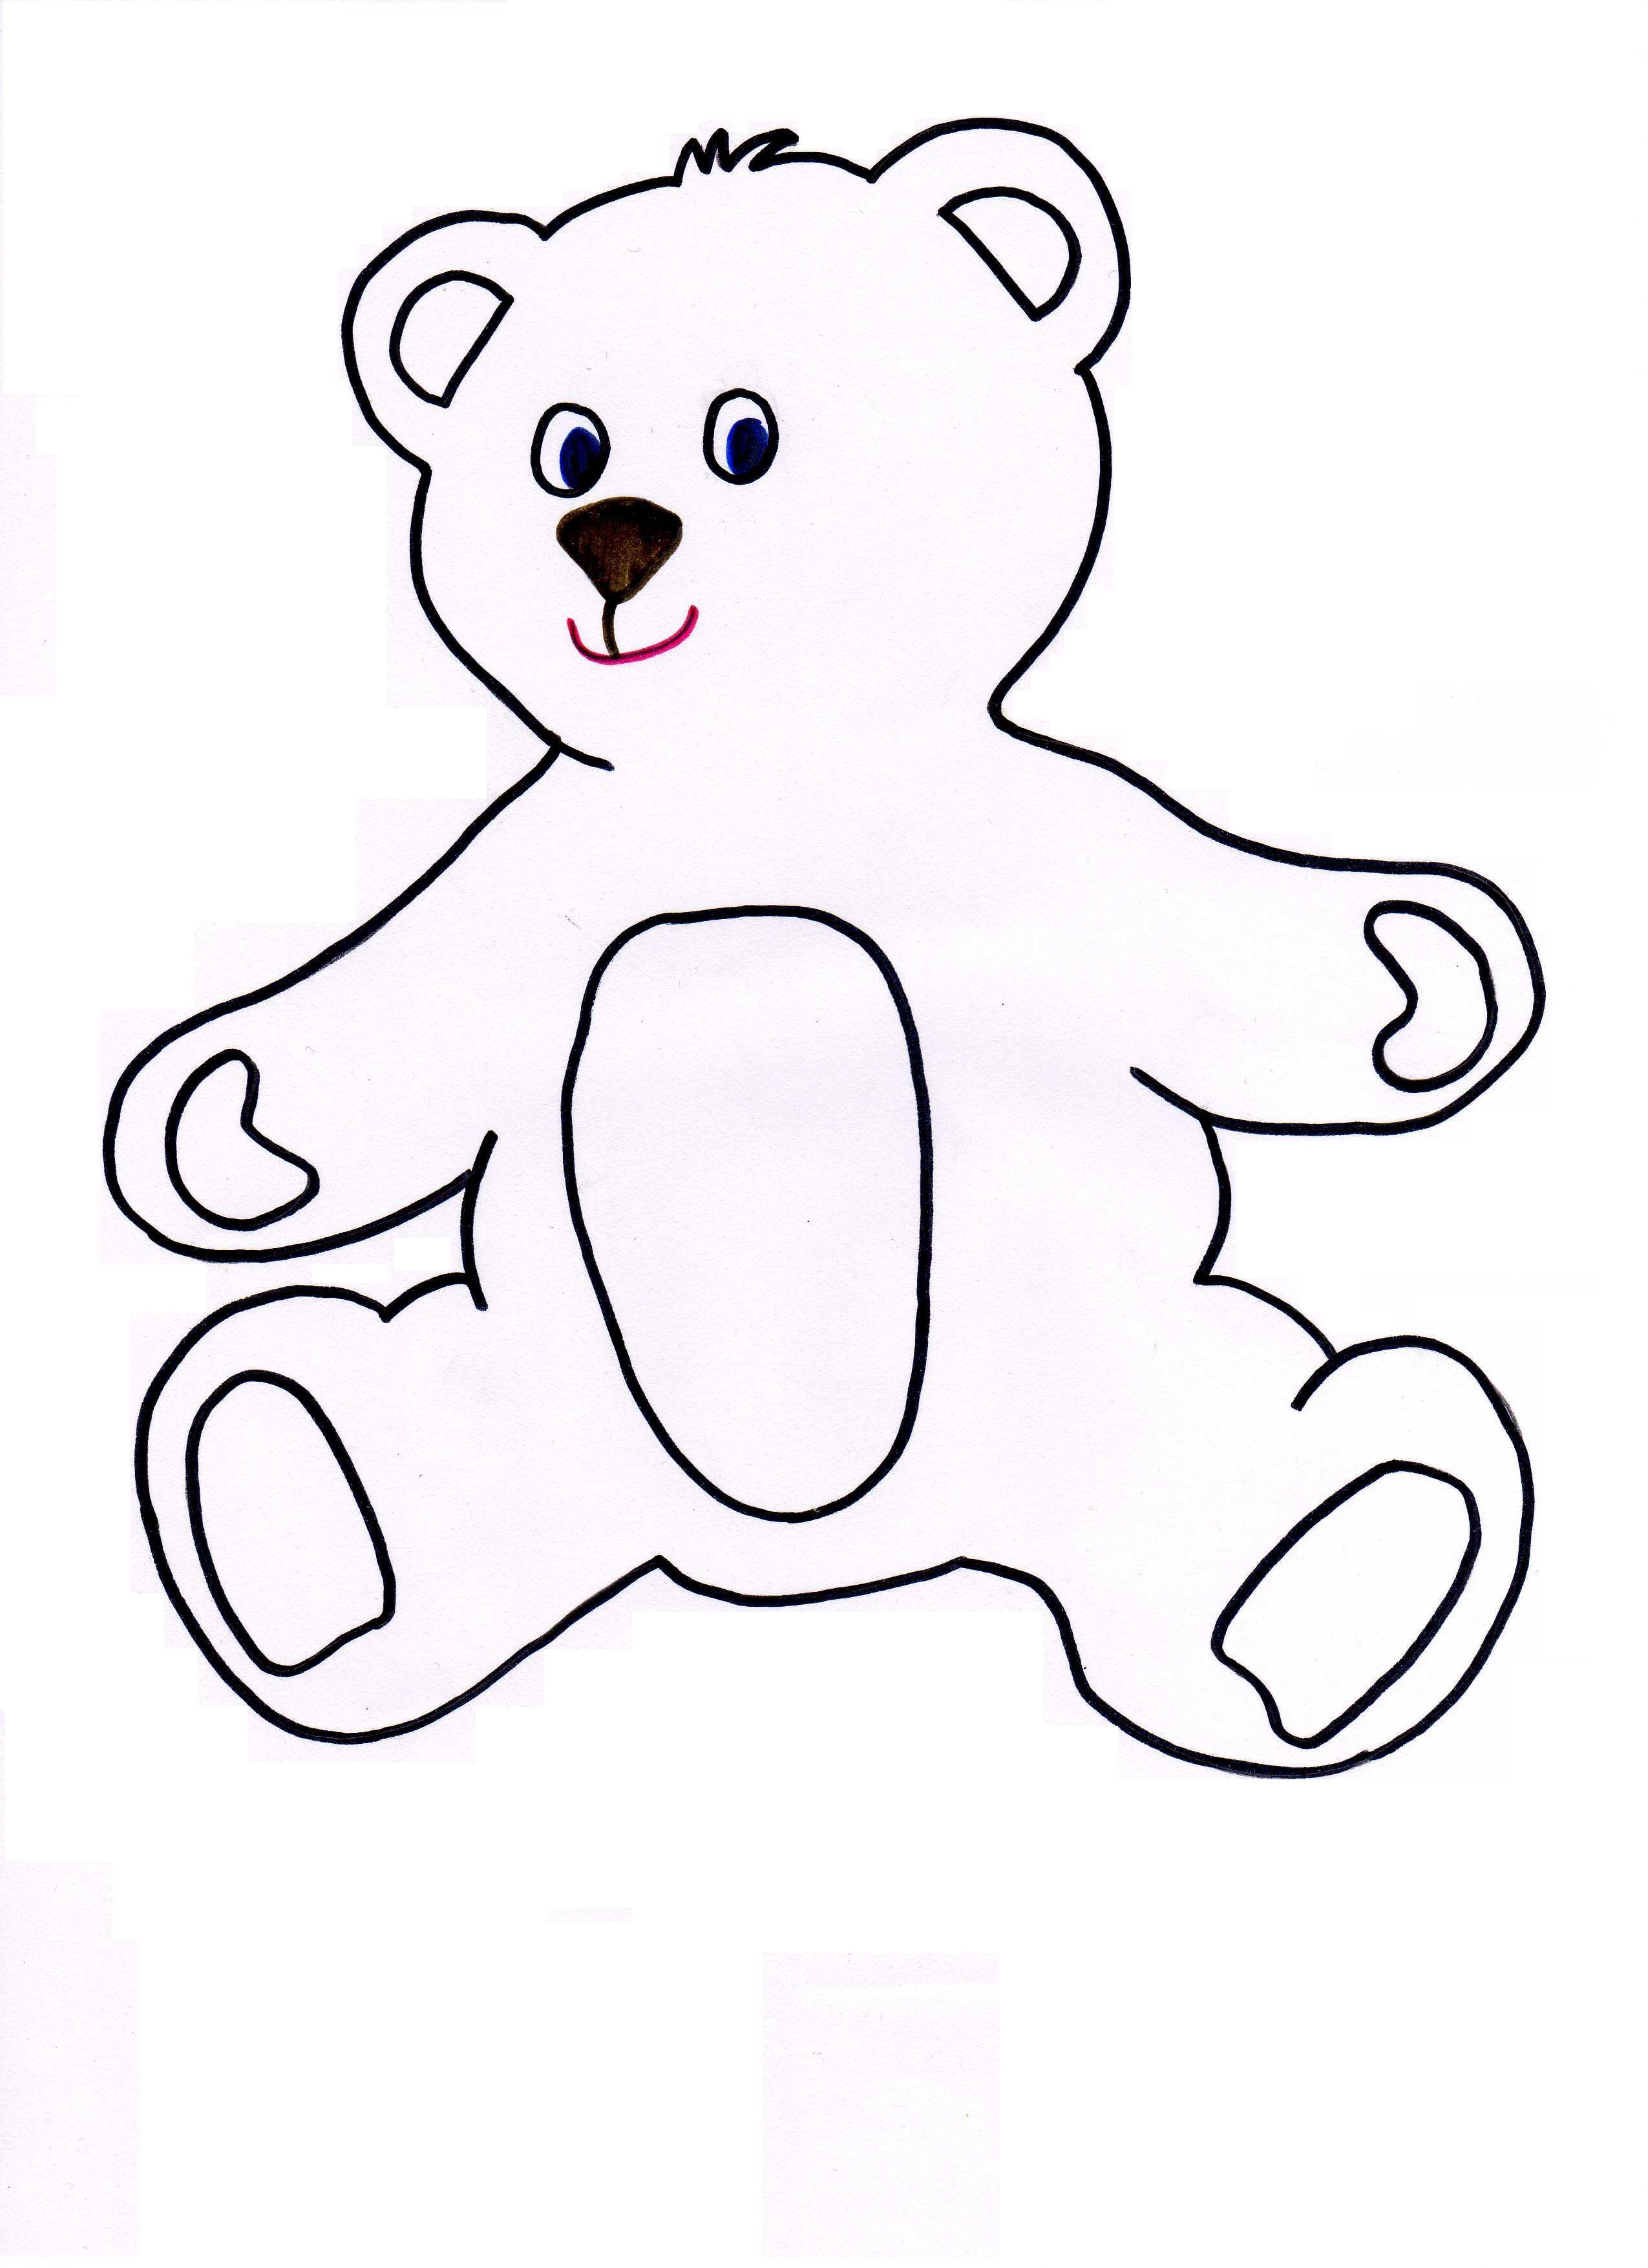 Teddy Bear Templates - ClipArt Best